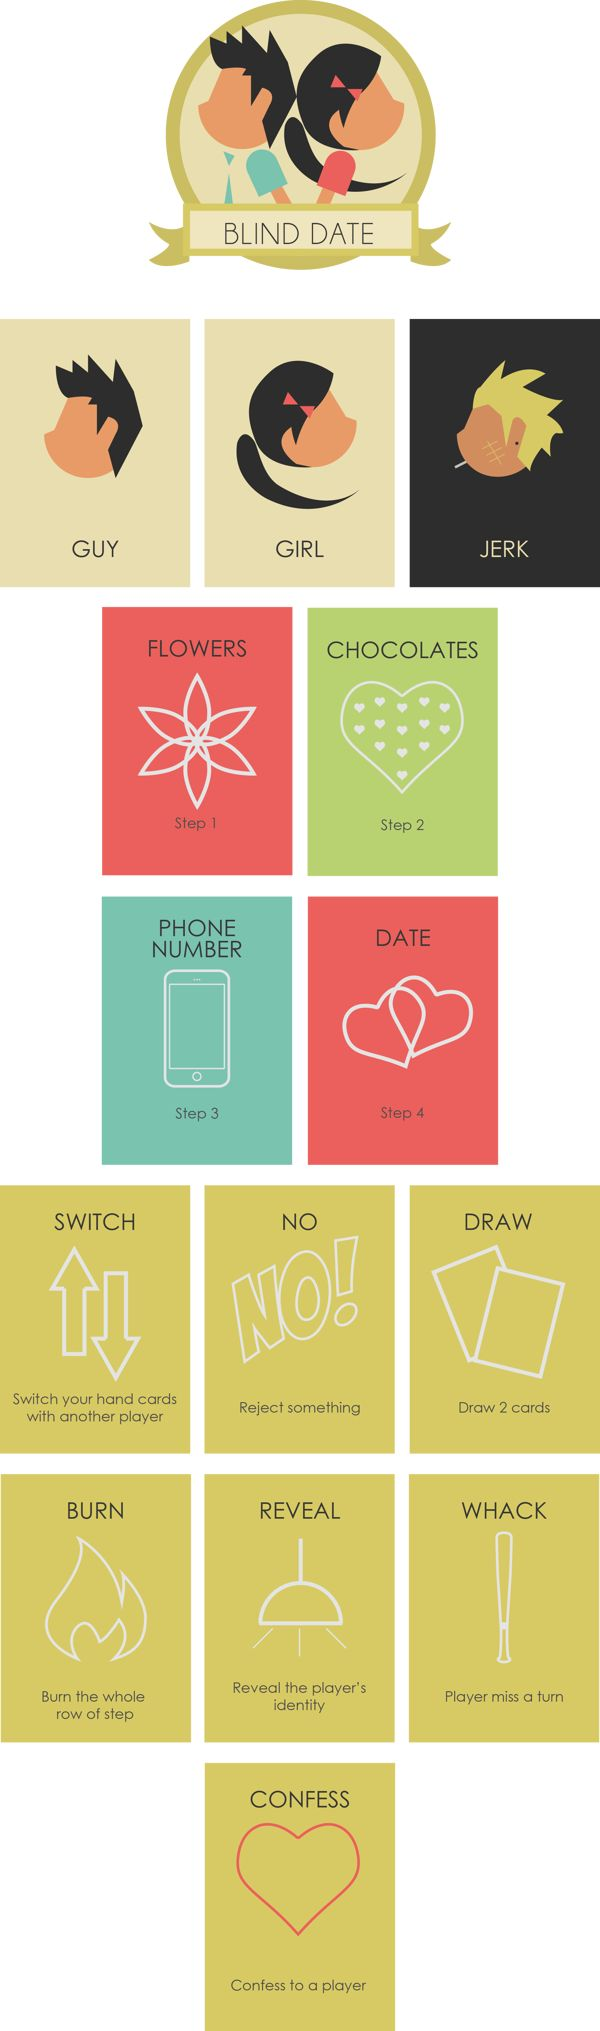 Blind Date (Card Game Design)